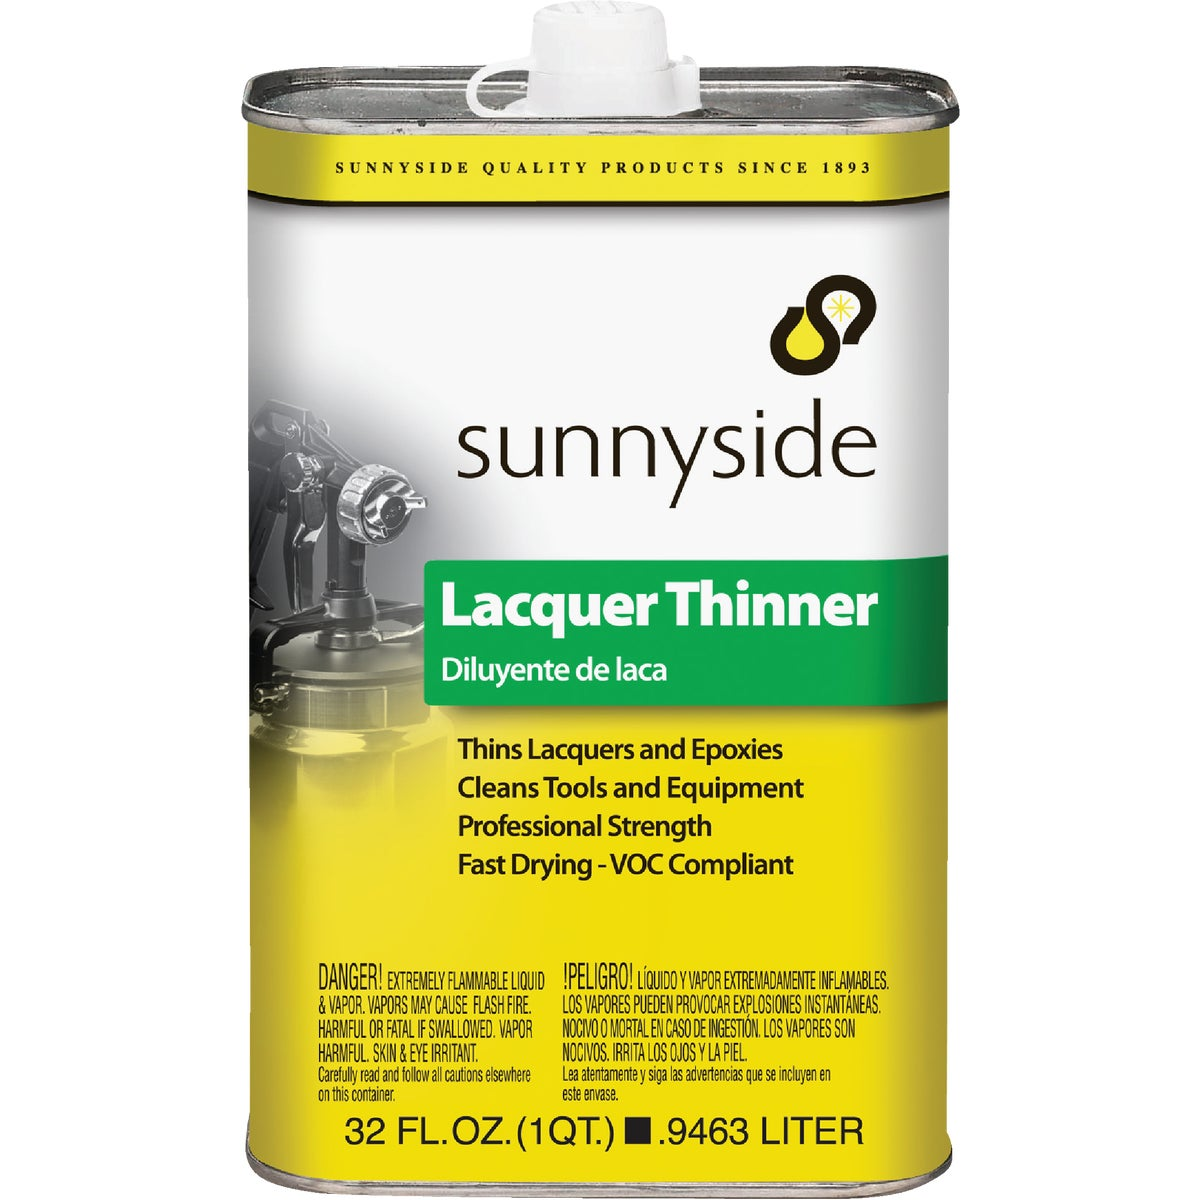 LVOC LACQUER THINNER